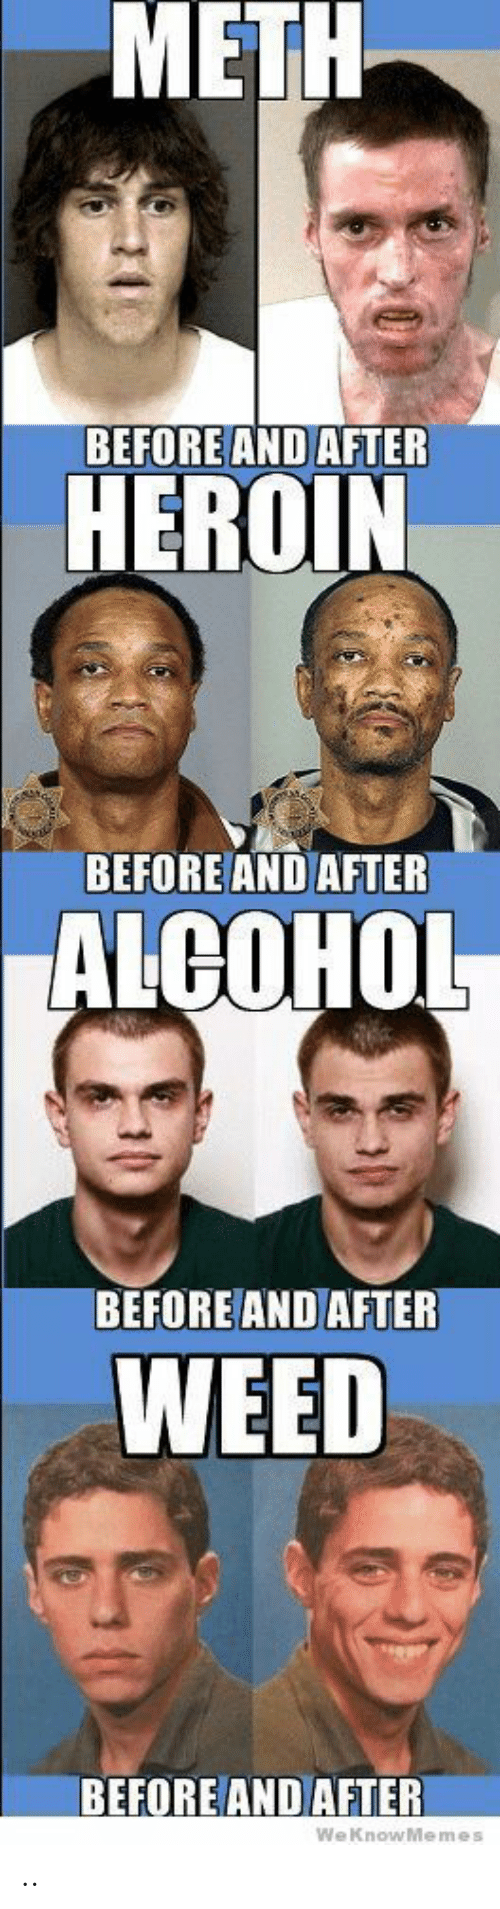 Heroin, Weed, and Alcohol: METH  BEFORE AND AFTER  HEROIN  BEFORE AND AFTER  ALCOHOL  BEFORE AND AFTER  WEED  BEFORE AND AFTER  WeKnowMemes  0 ..